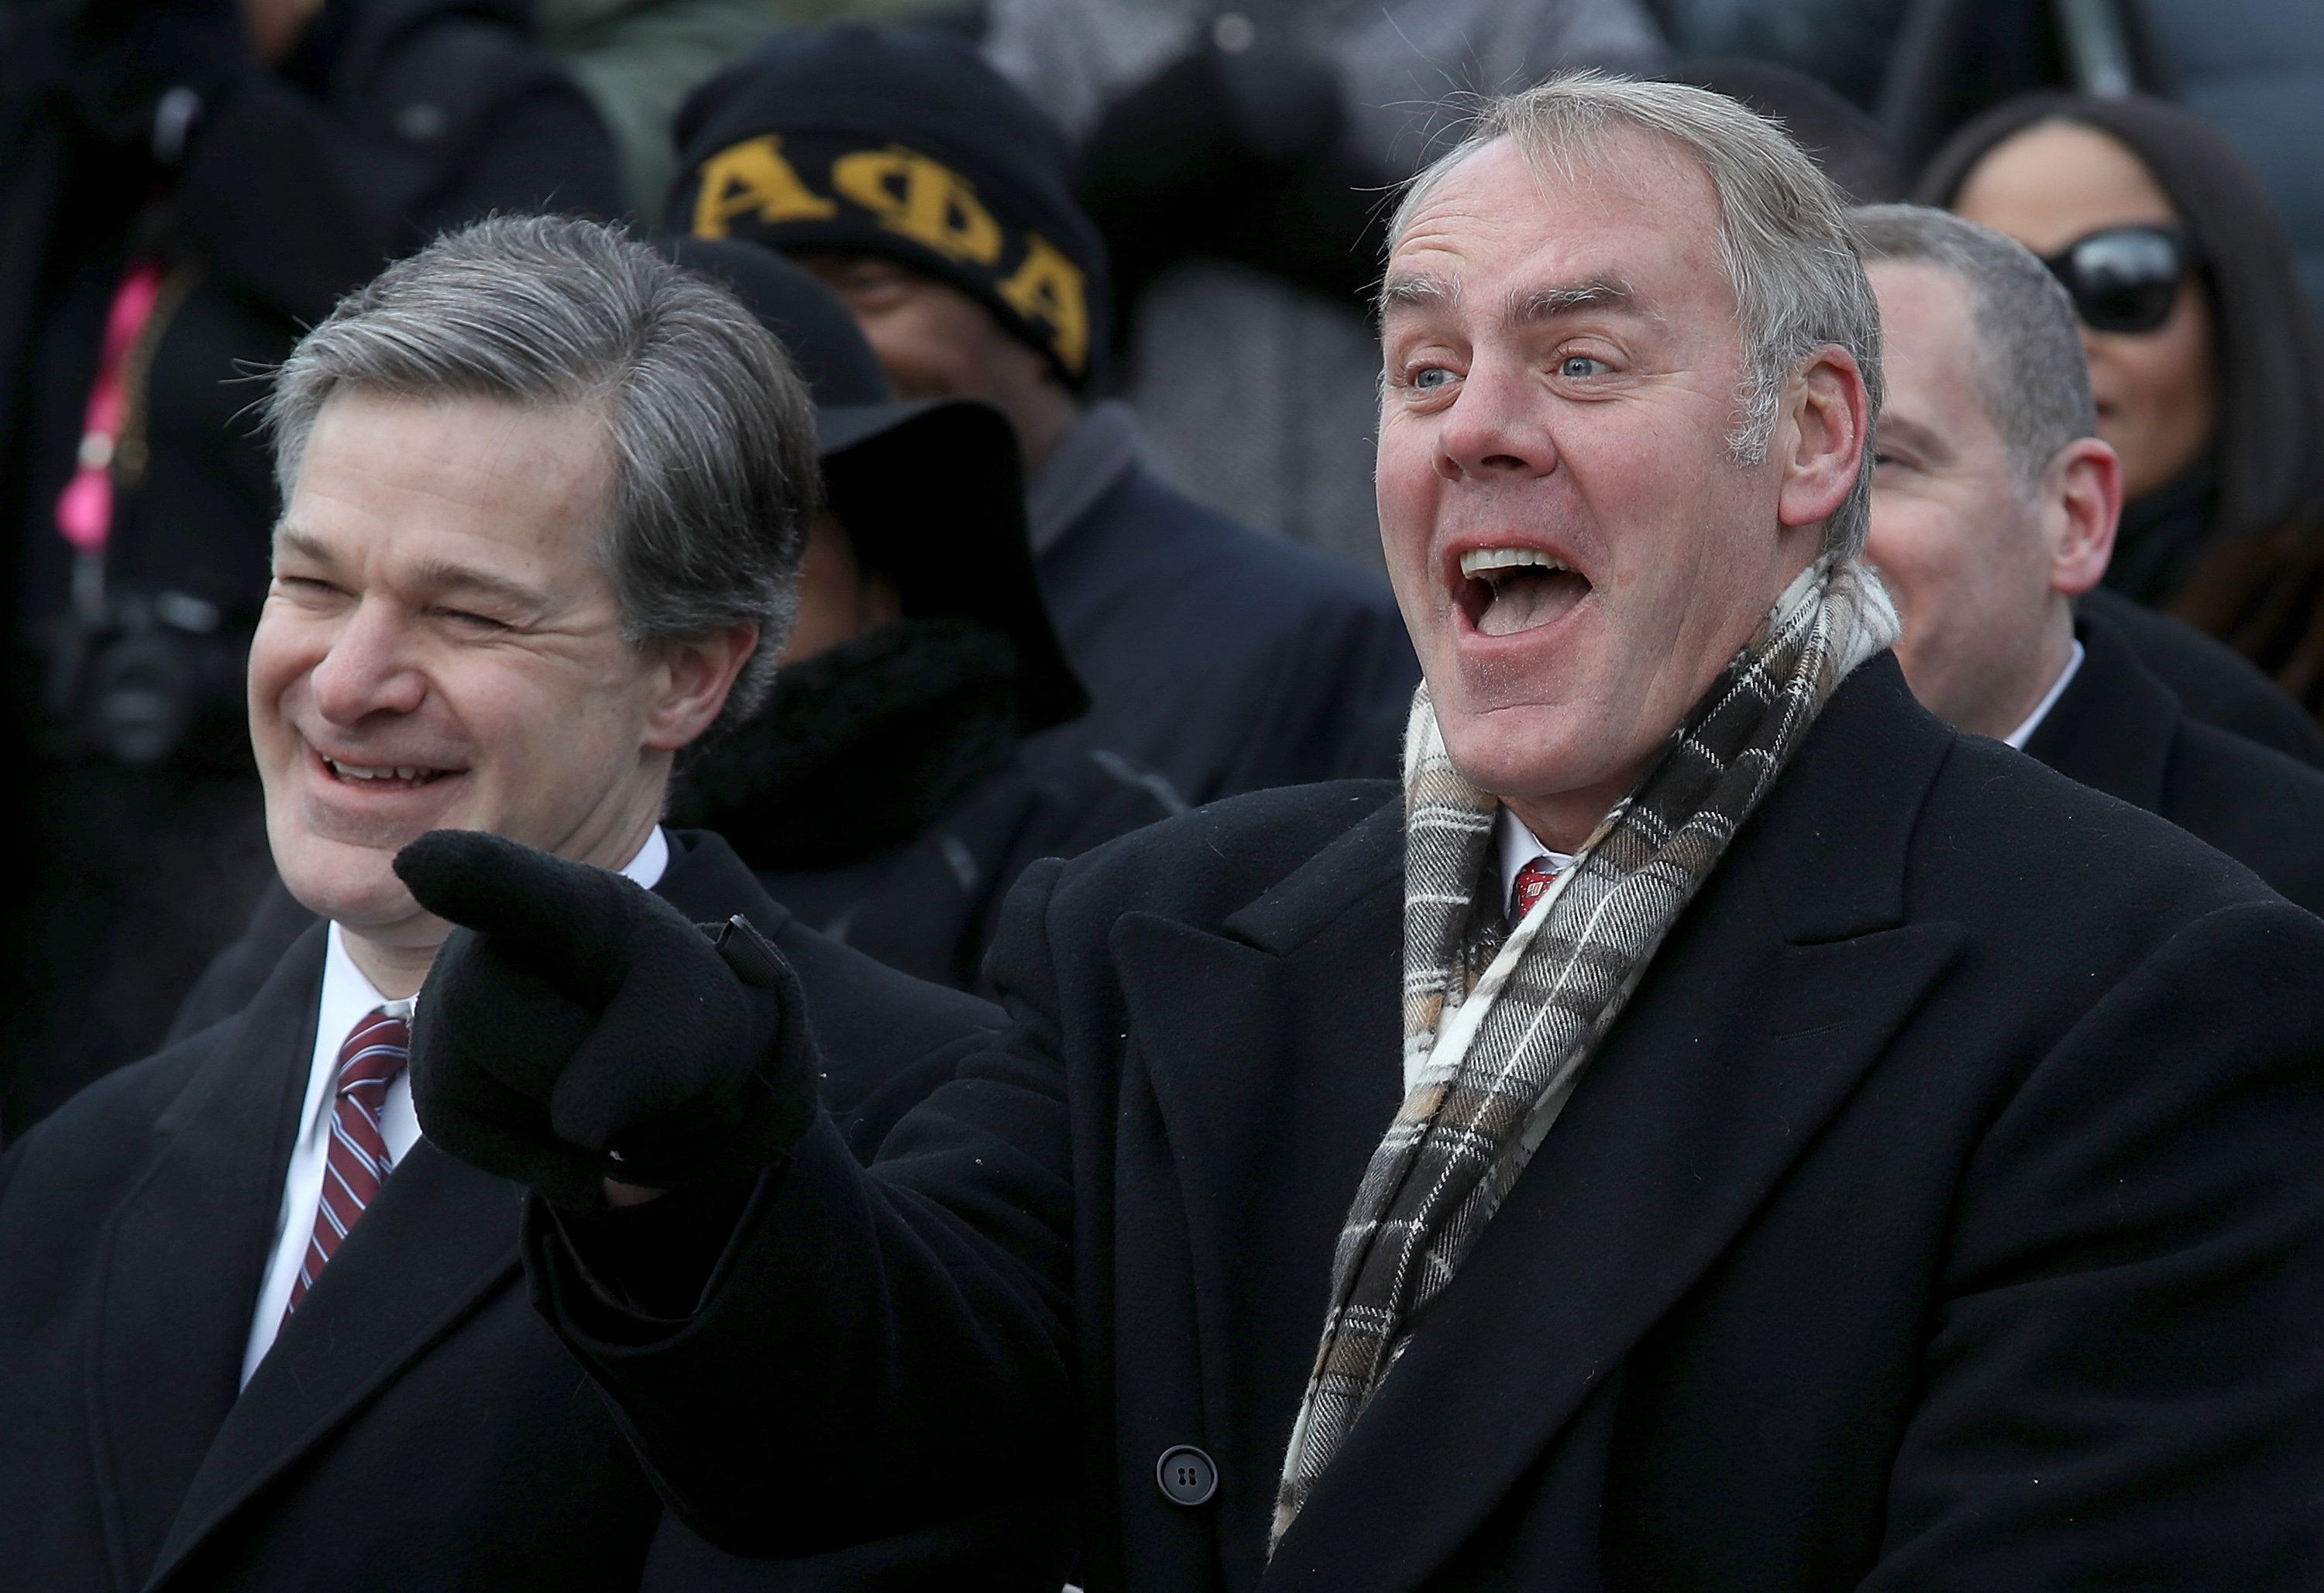 WASHINGTON, DC - JANUARY 15:  Interior Secretary Ryan Zinke (R) and FBI Director Christopher Wray (L) take part in a ceremony at the Martin Luther King Jr. Memorial on Martin Luther King Day January 15, 2018 in Washington DC. Martin Luther King Jr. would have been 89 years old today. The two were laughing about a joke made by one of the speakers during the ceremony. (Photo by Win McNamee/Getty Images)